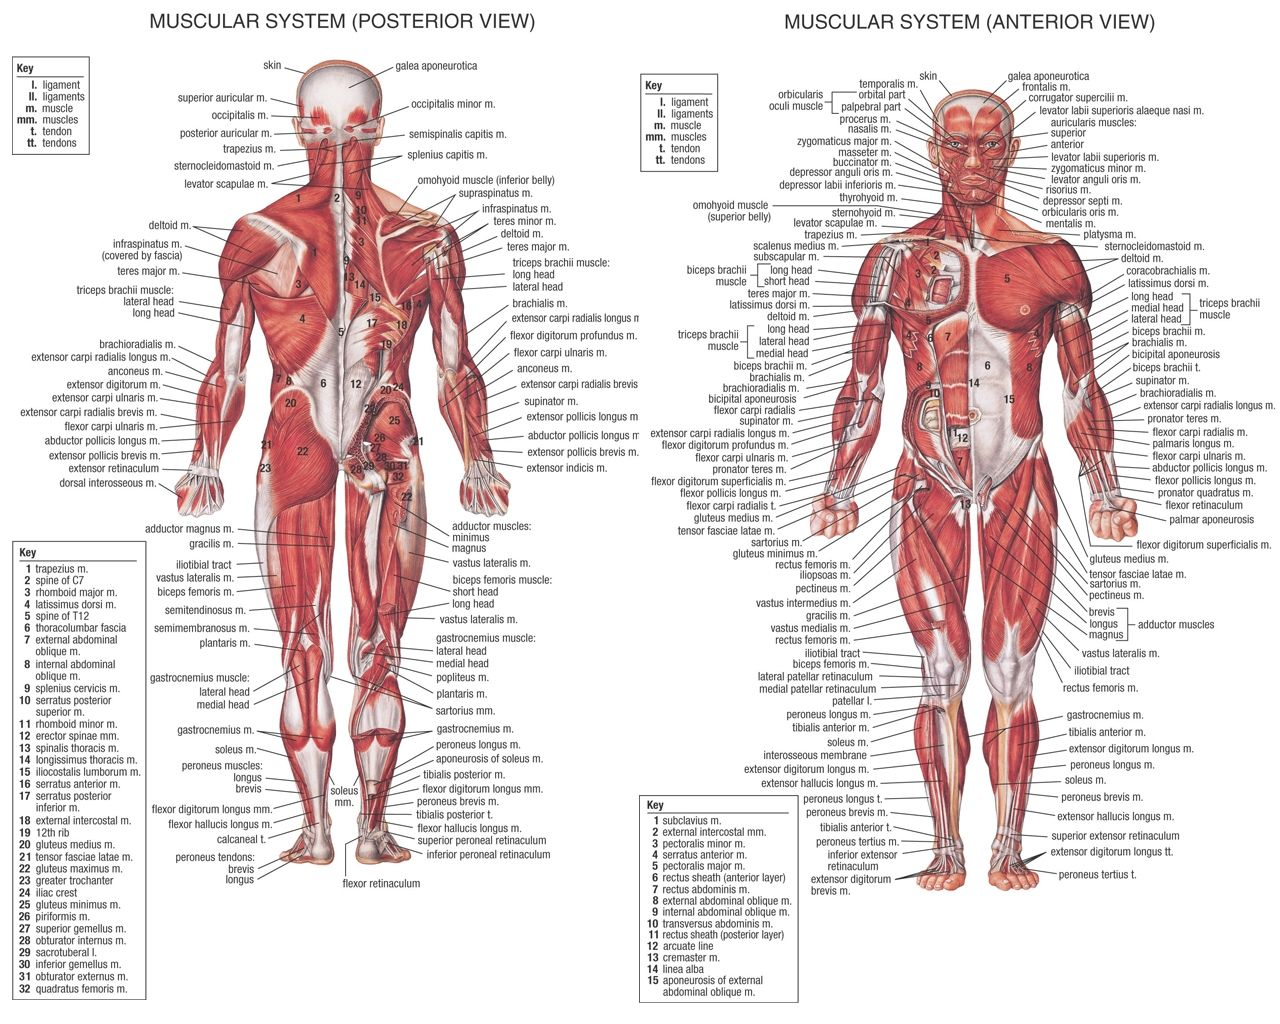 Human Torso Muscles The Human Body Muscles | Kisology | Pinterest ...